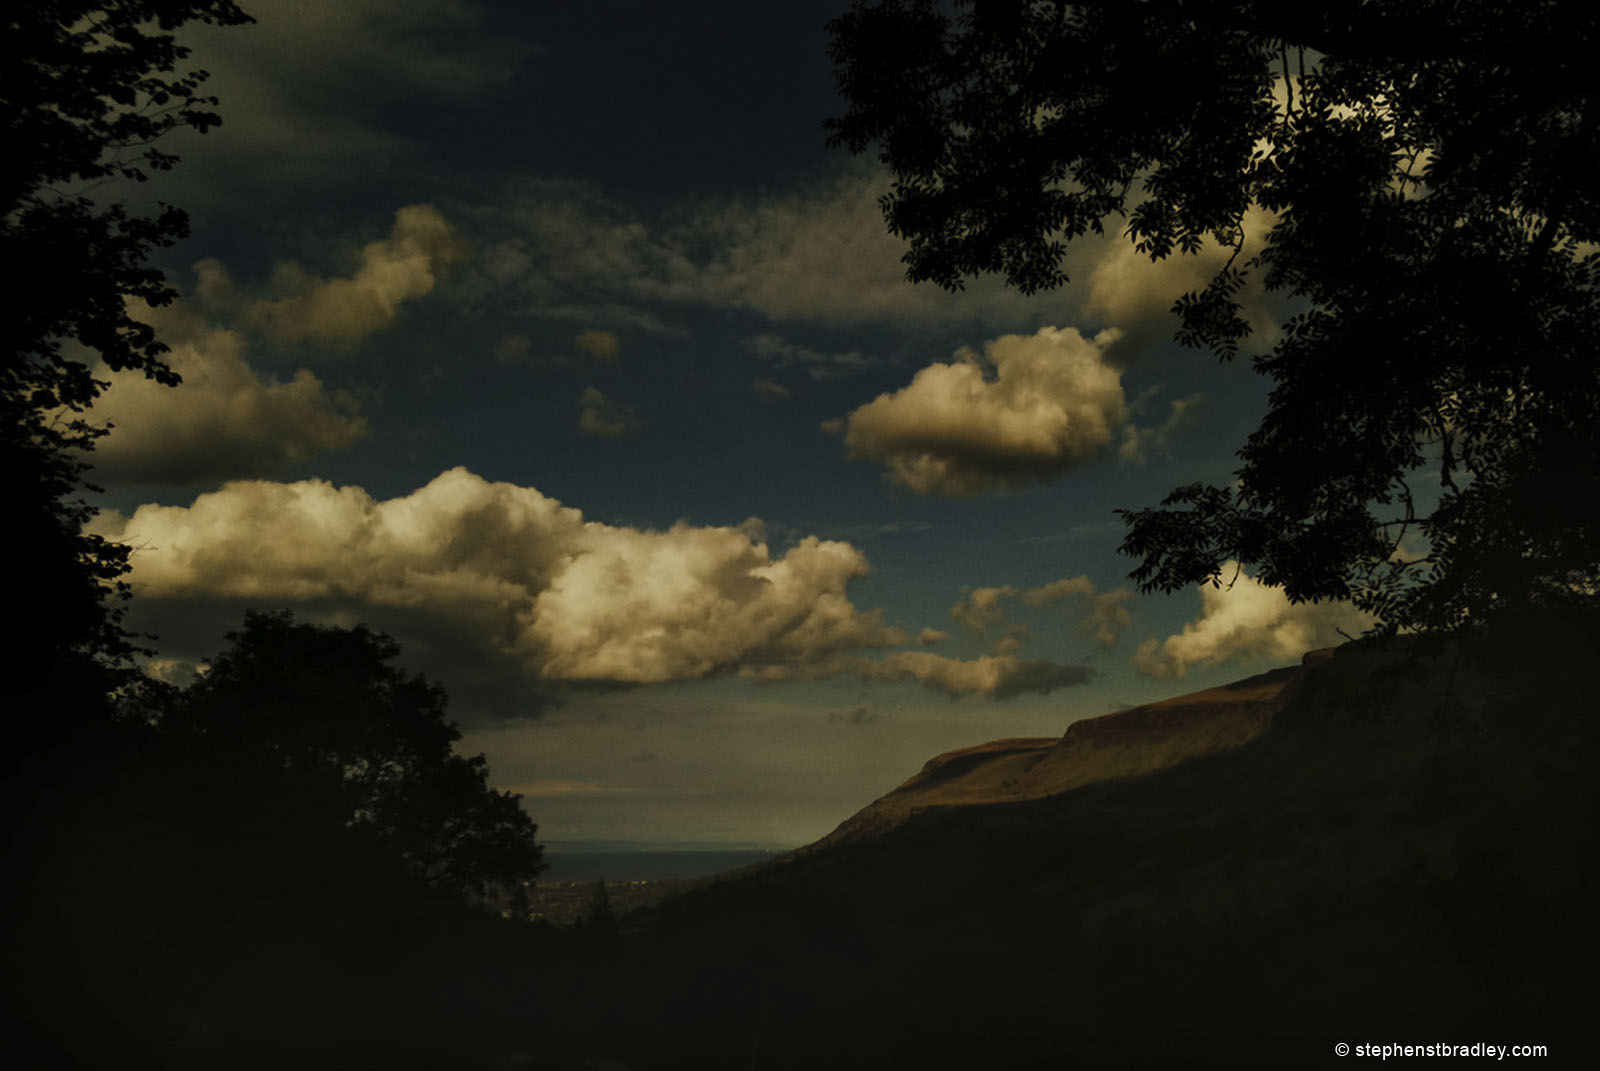 Commercial Photographer Atlanta landscape photo of clouds over Glenariff, Northern Ireland - photo 0305